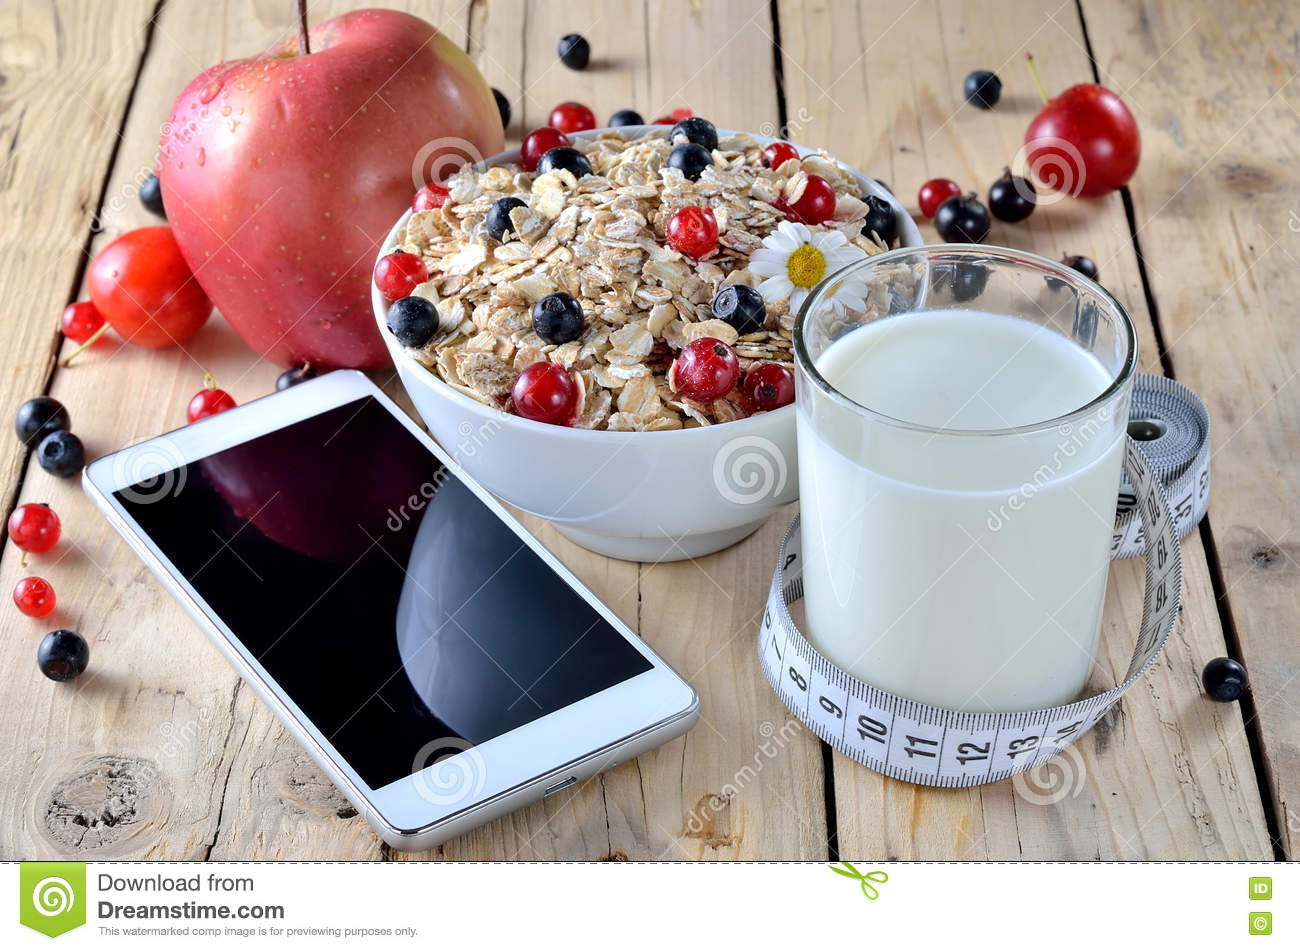 Download Healthy Eating Oatmeal With Berries A Glass Of Milk And Telep Stock Image